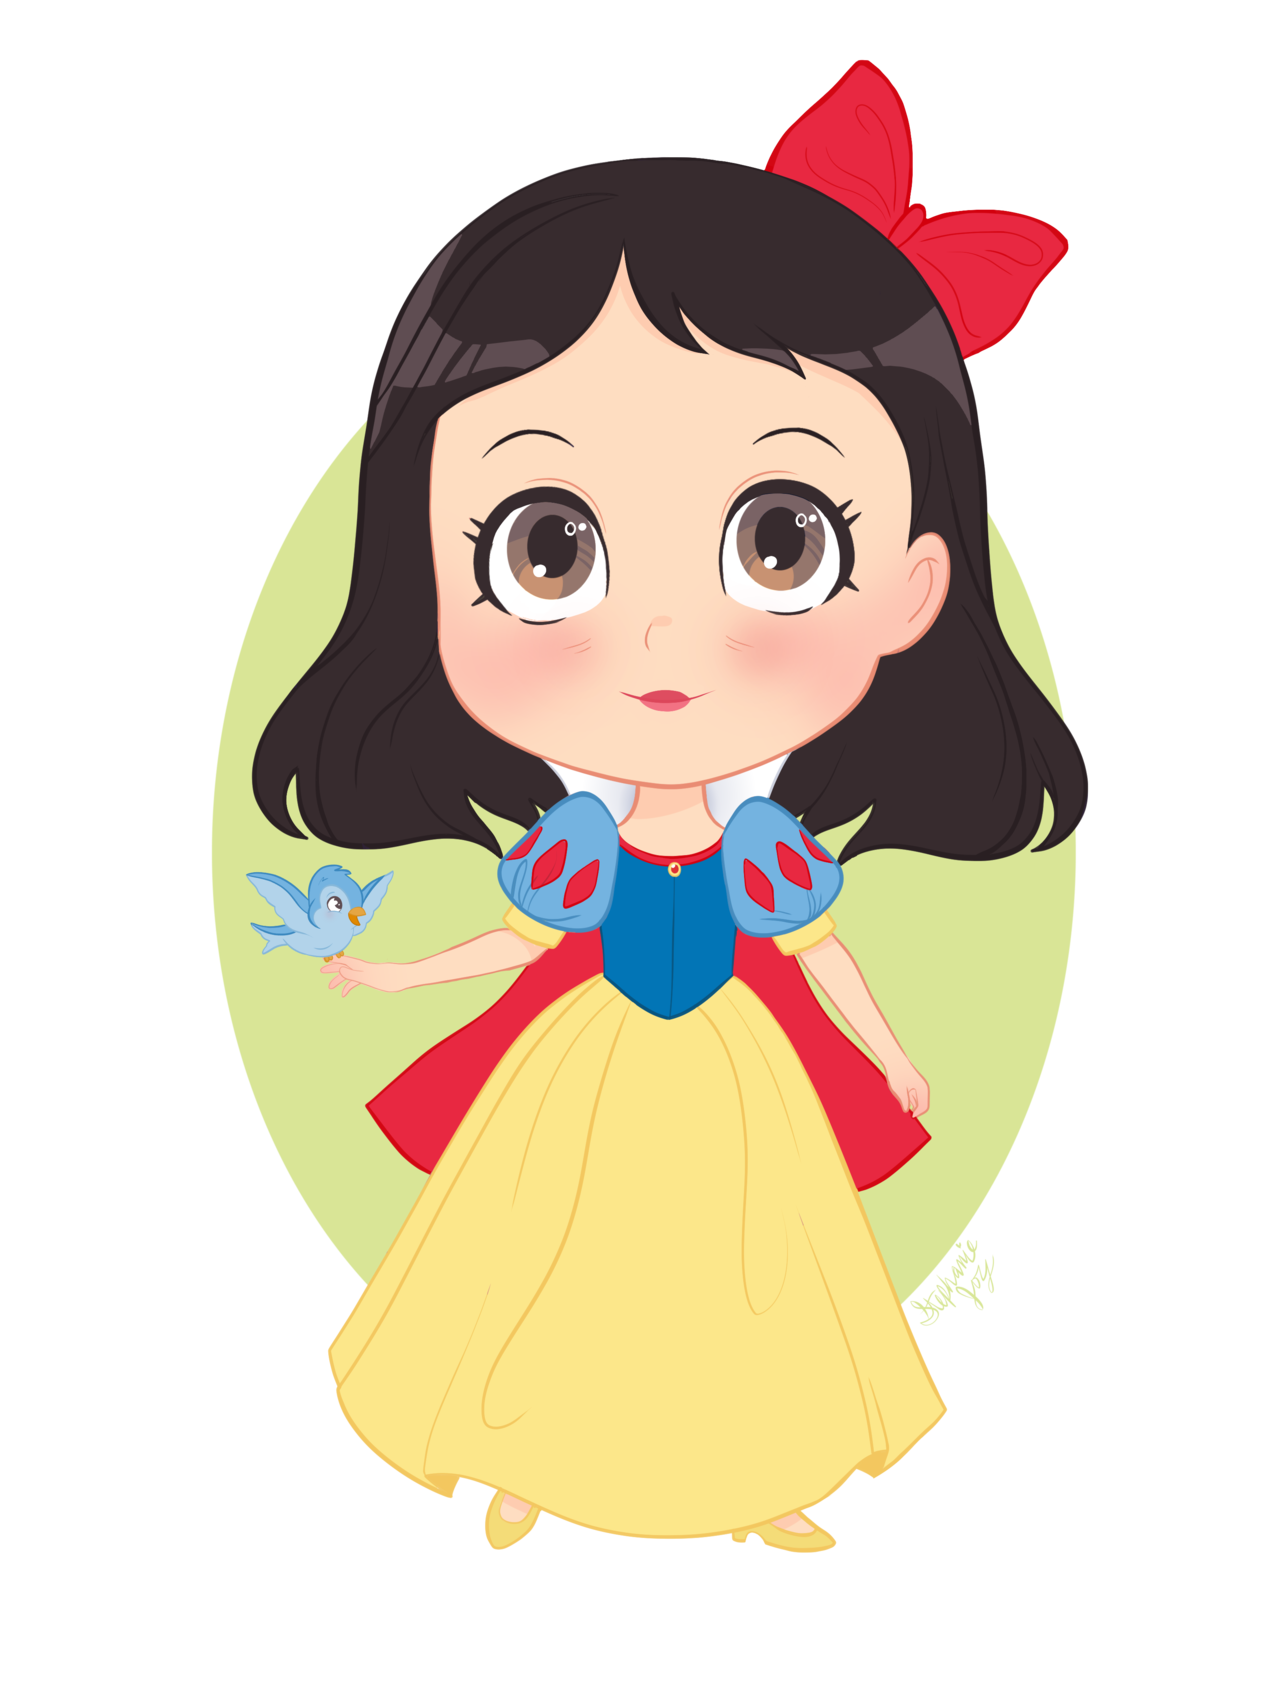 Is just so cute. Queen clipart snow white witch